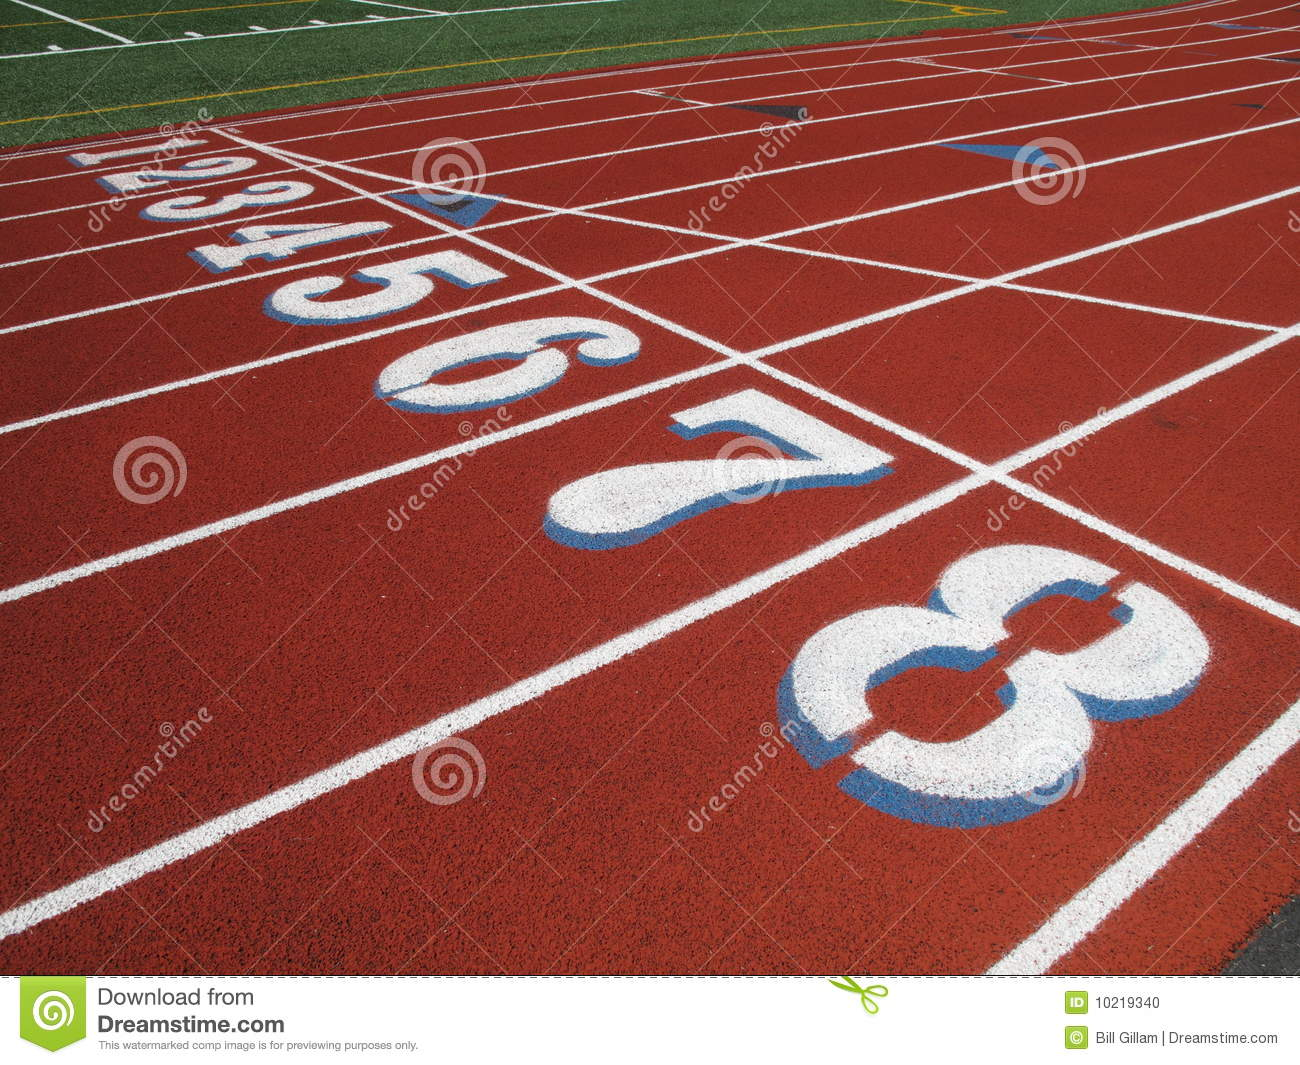 Http Www Dreamstime Com Stock Photo High School Track Starting Line Image10219340